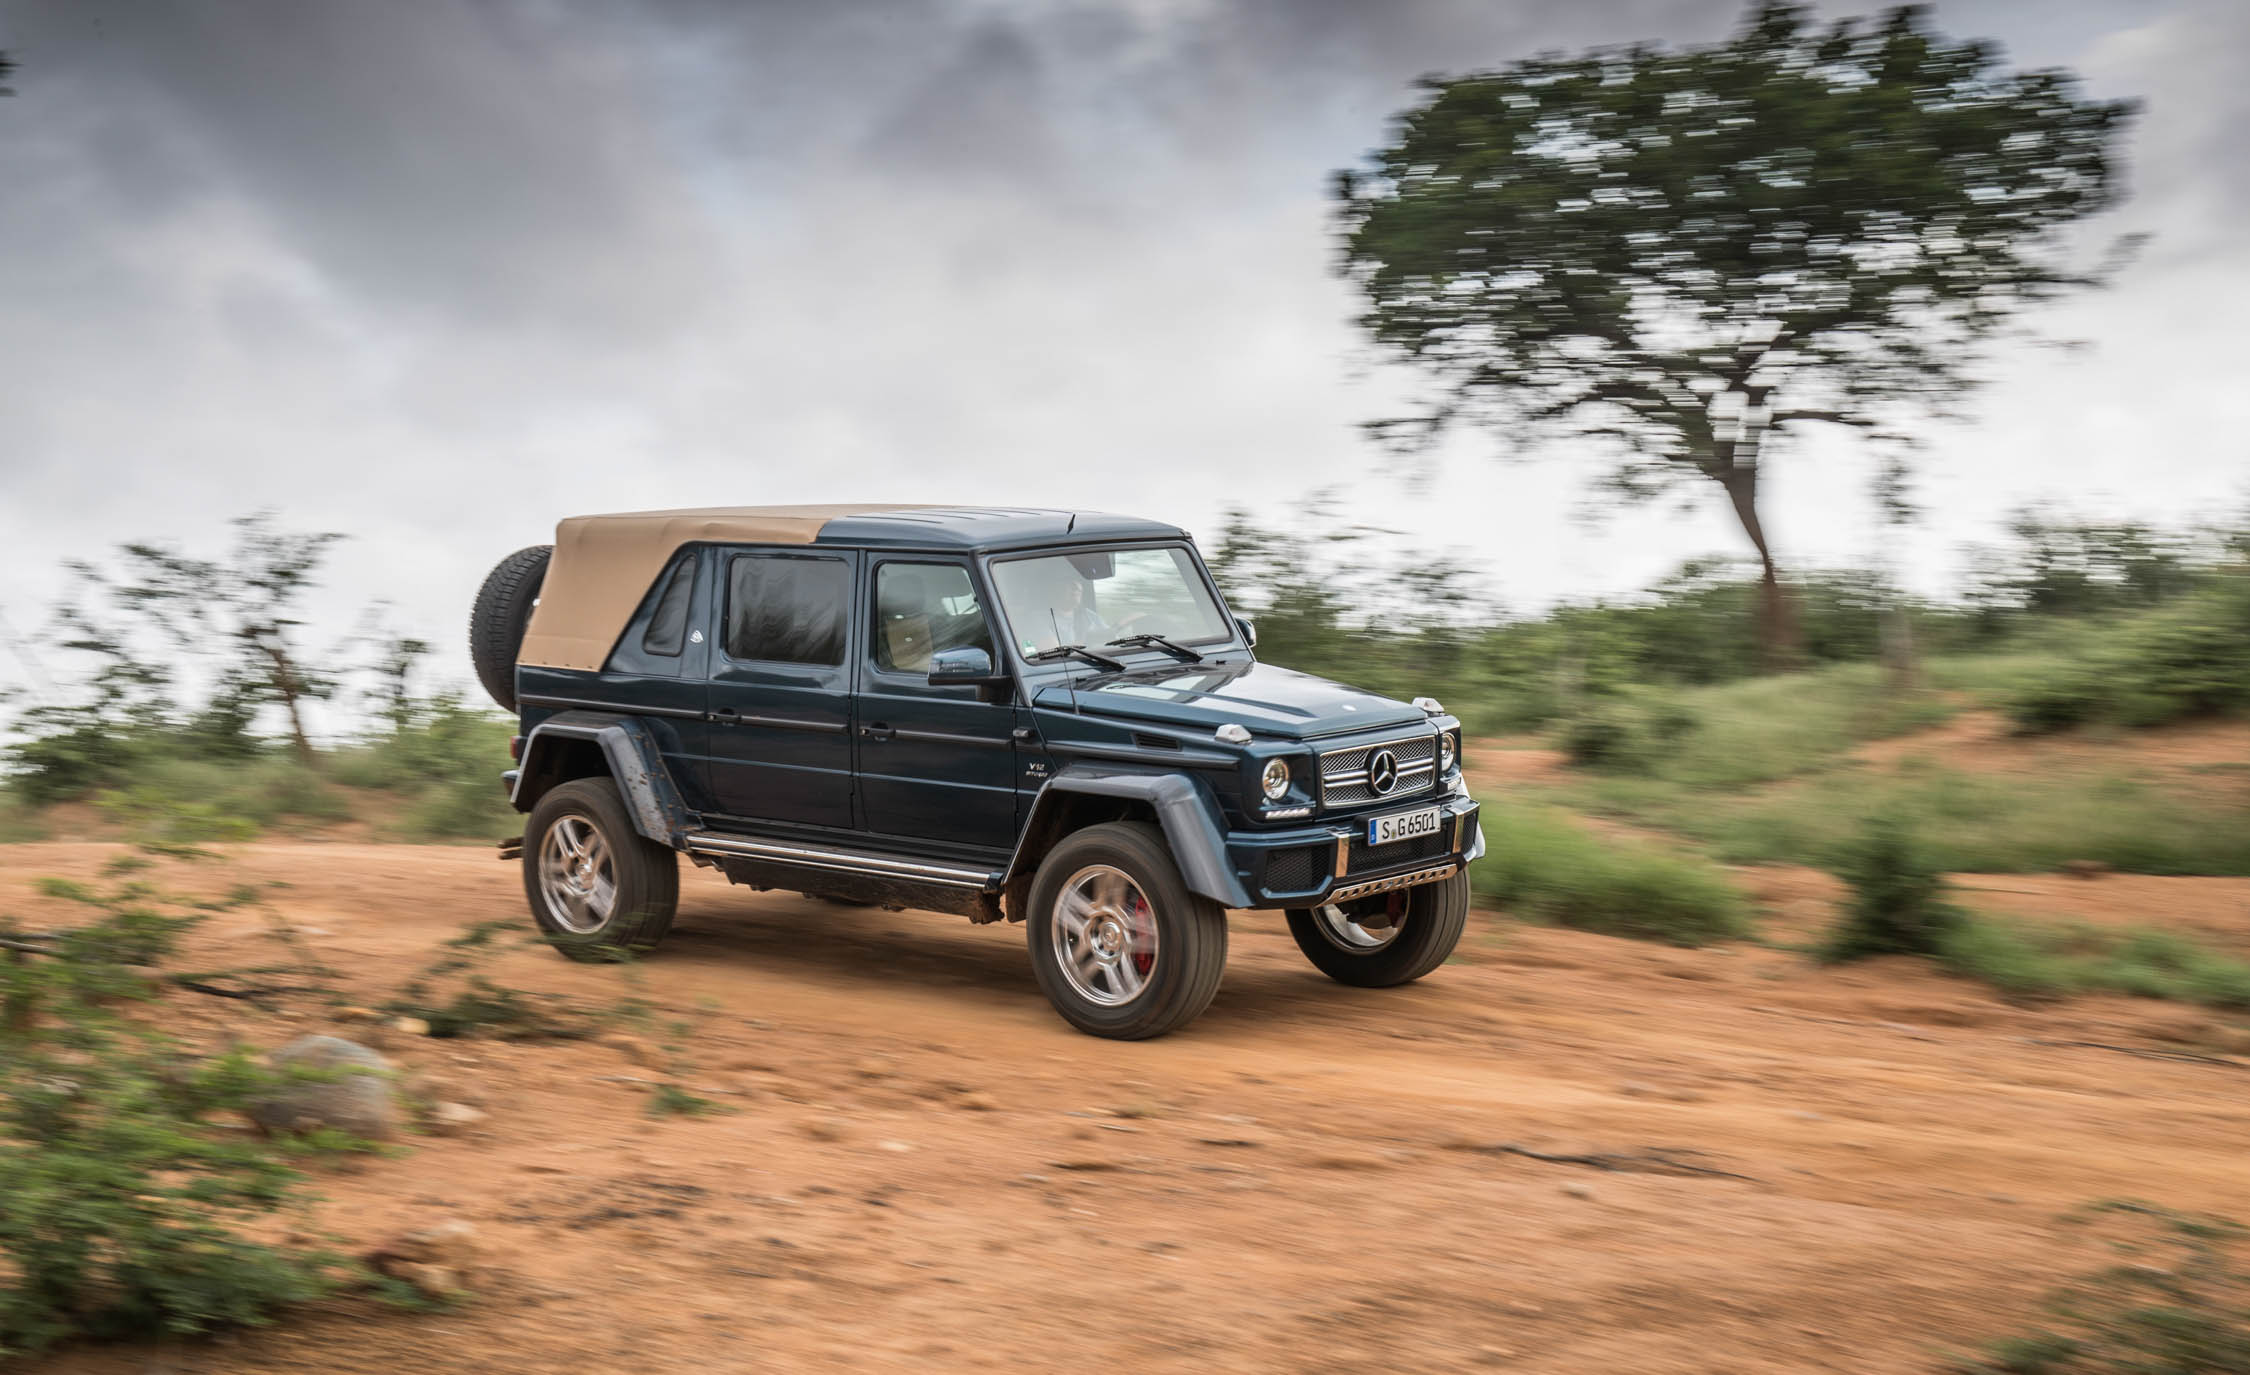 2018 Mercedes Maybach G650 Landaulet Test Drive Side View (Photo 43 of 52)